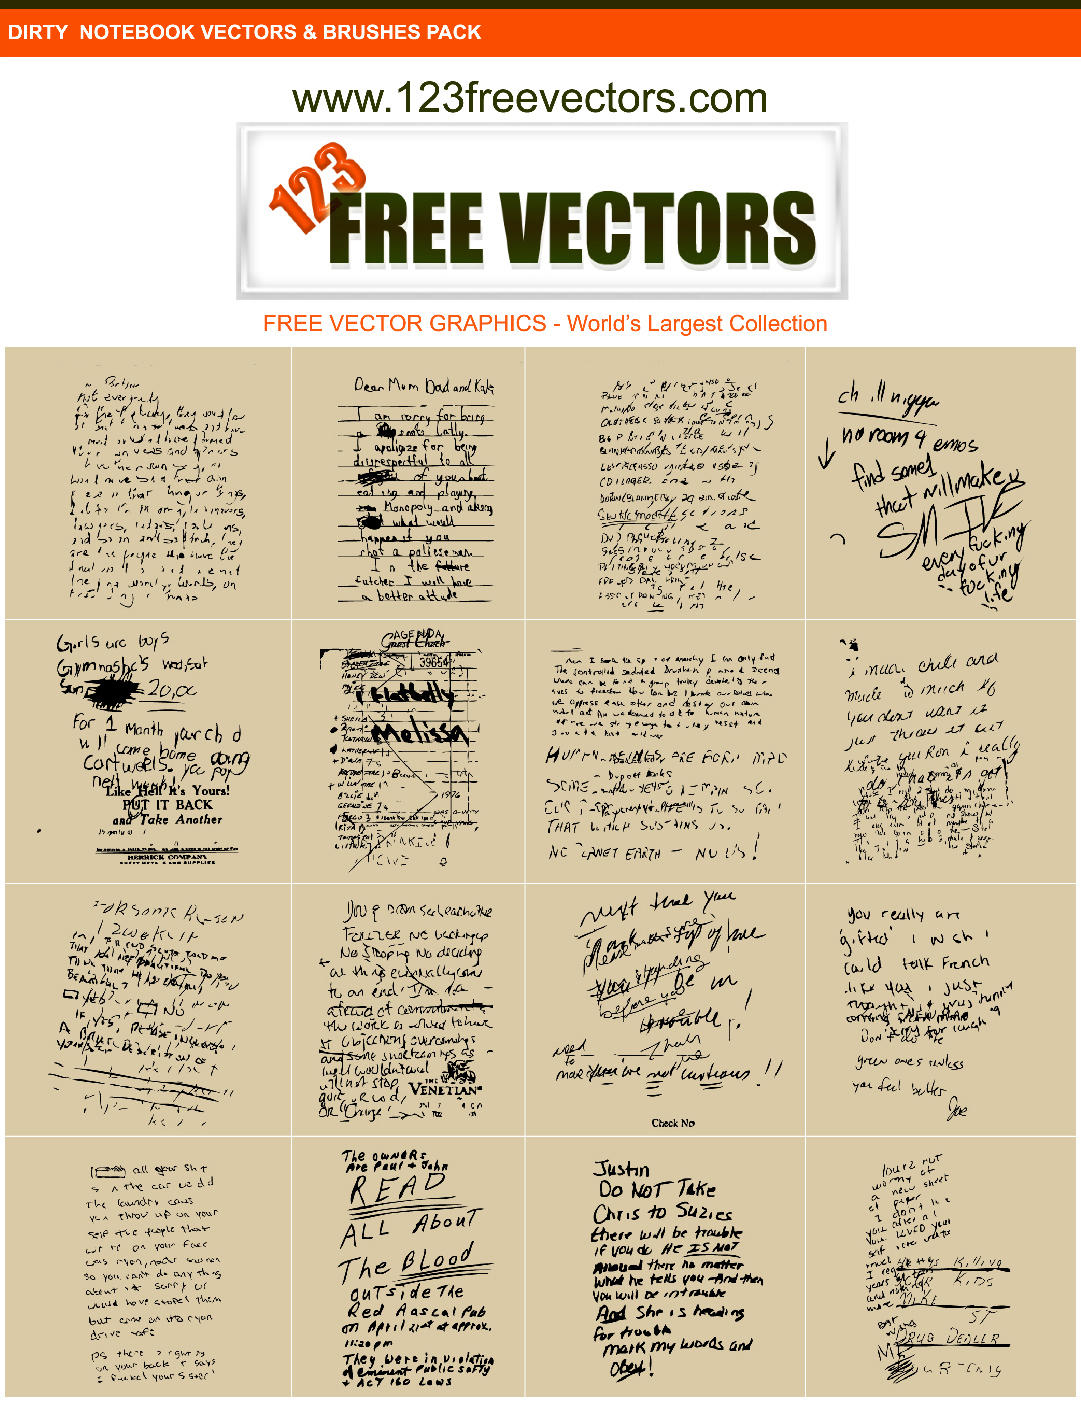 Dirty Note book Vectors by 123freevectors